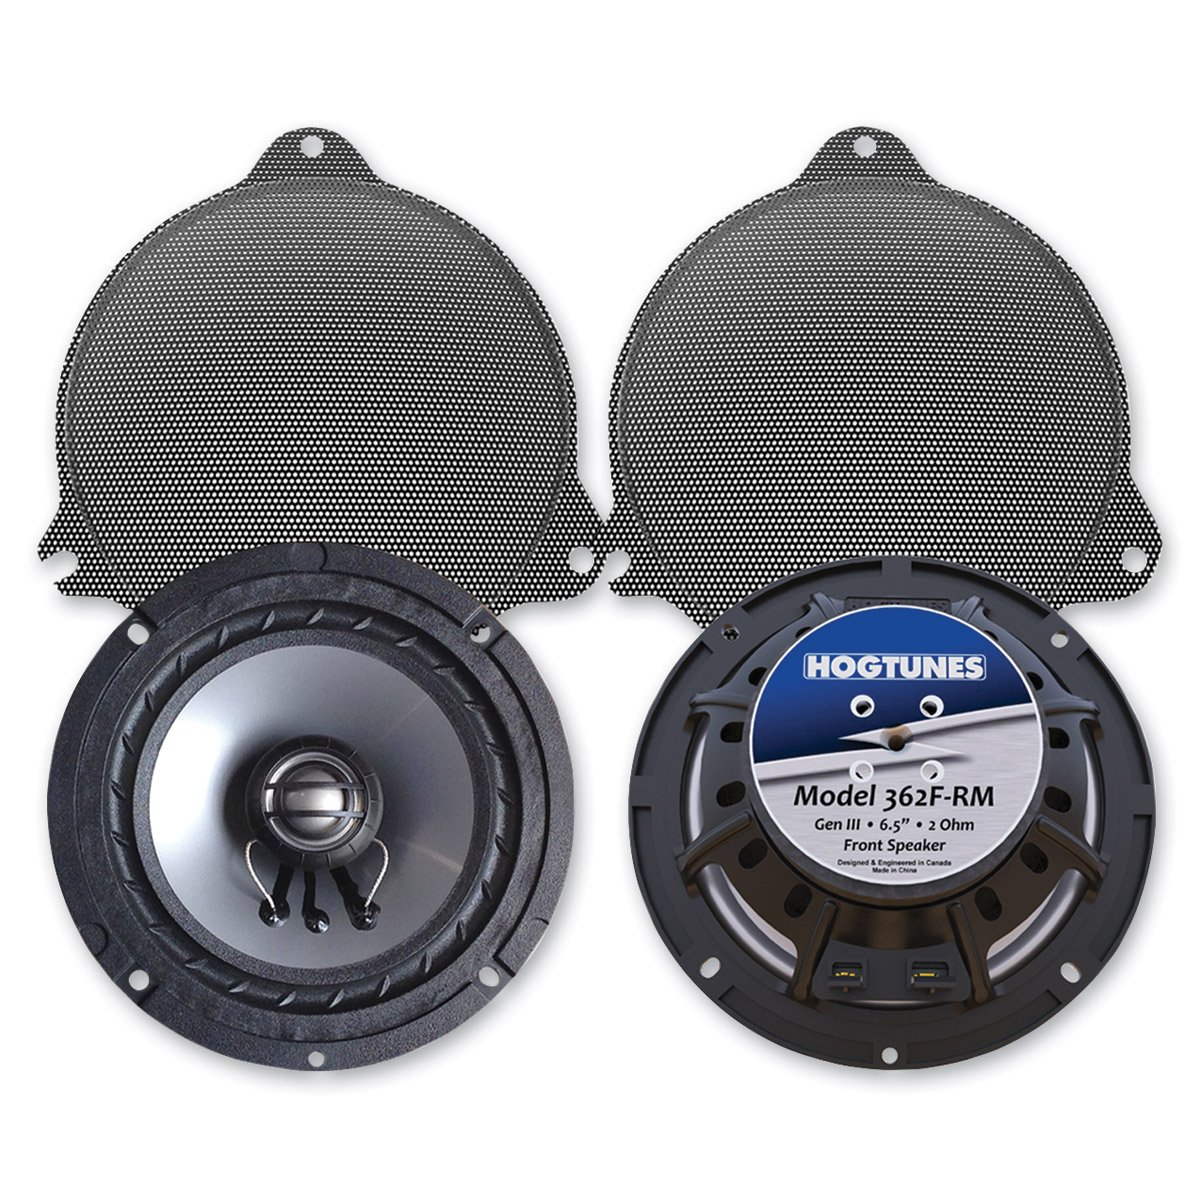 5. Hogtunes 362F-RM Front Speaker (Replacement Gen 3 6.5